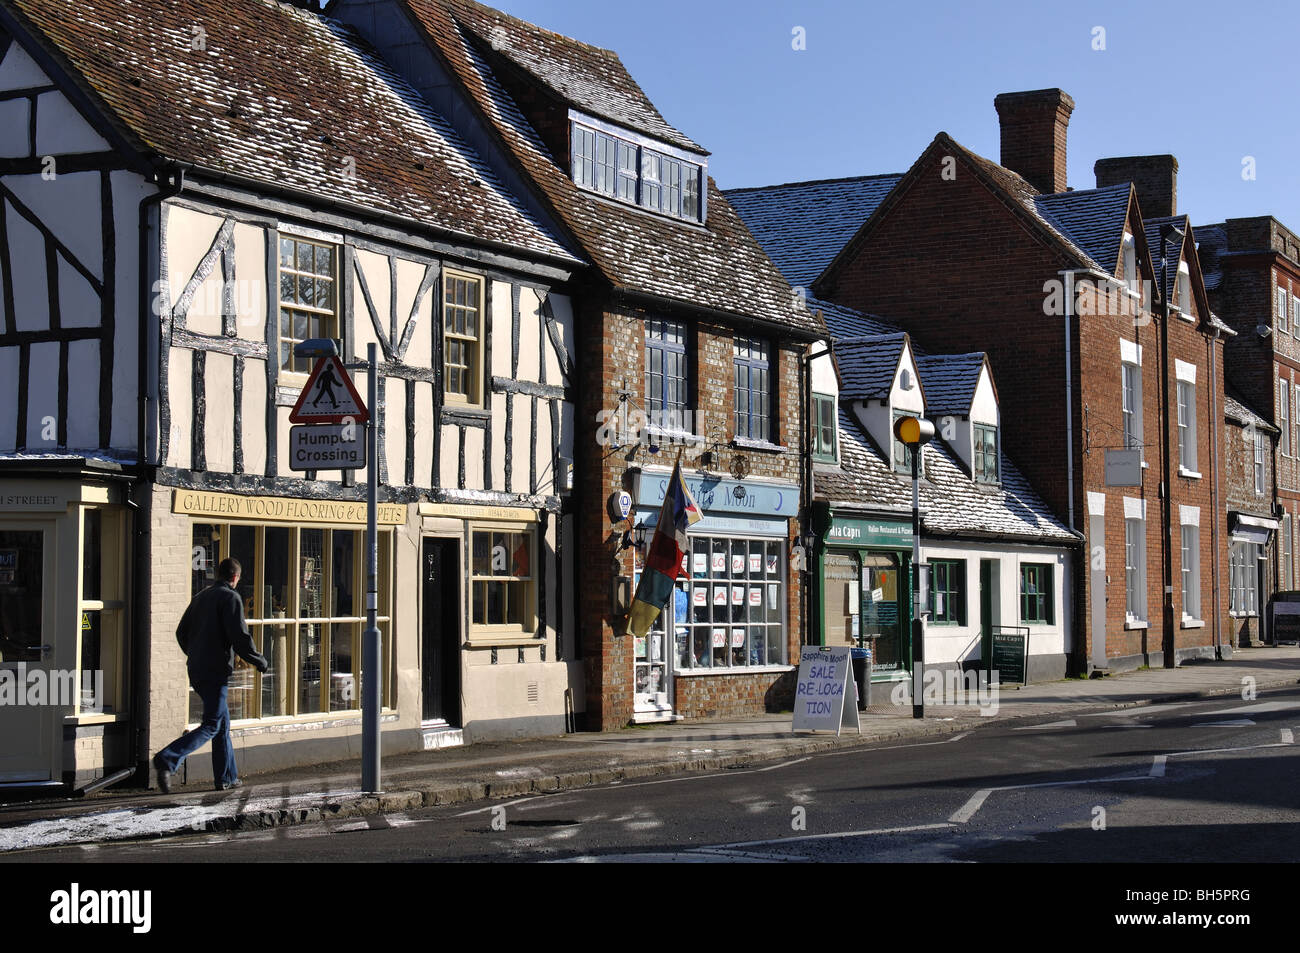 High Street in winter, Thame, Oxfordshire, England, UK - Stock Image